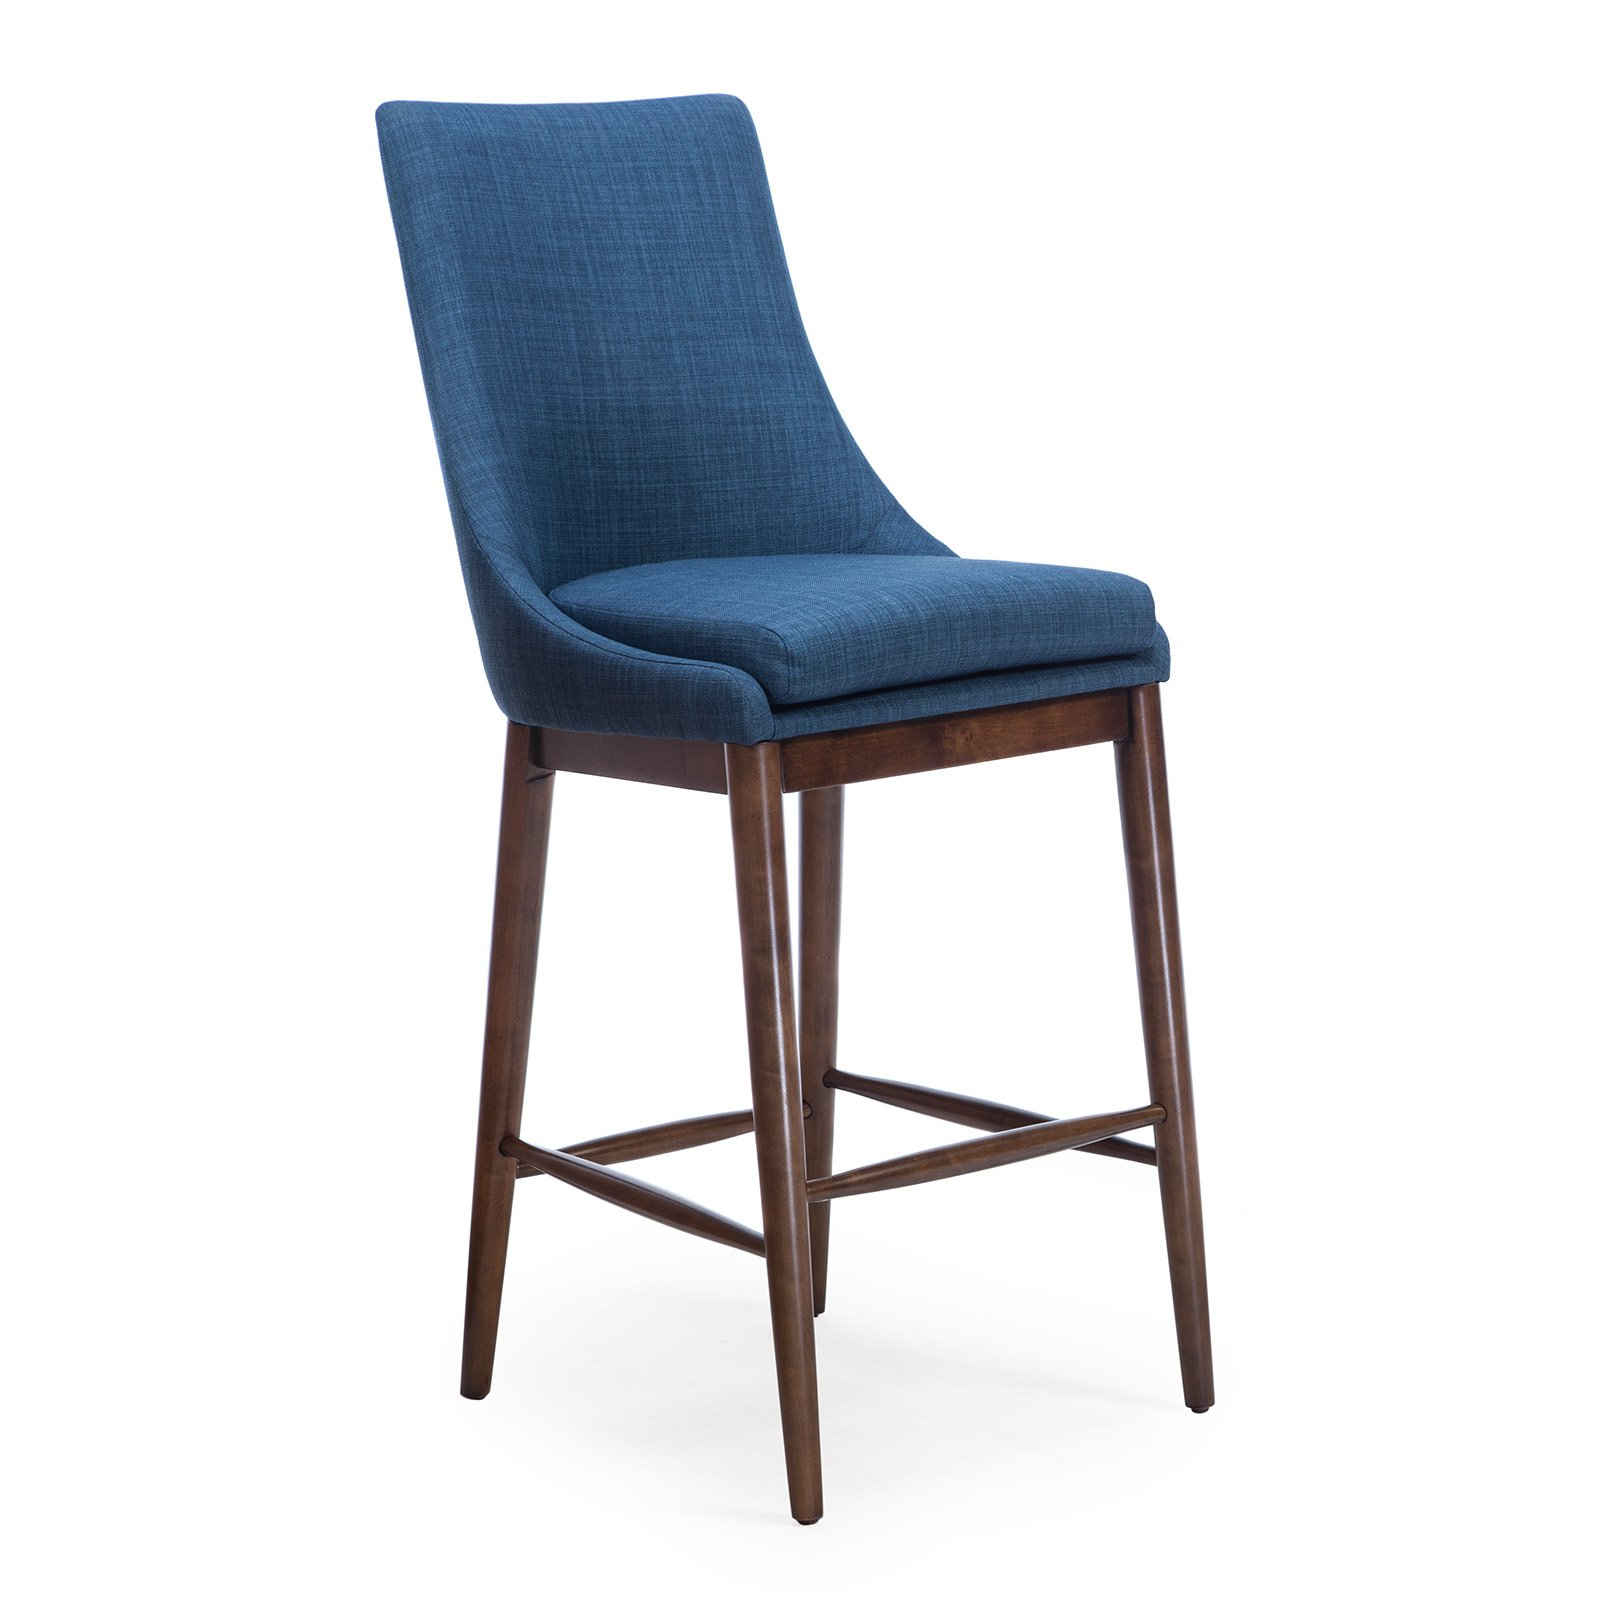 Belham Living Carter Mid-Century Modern Upholstered Bar-Height Stool